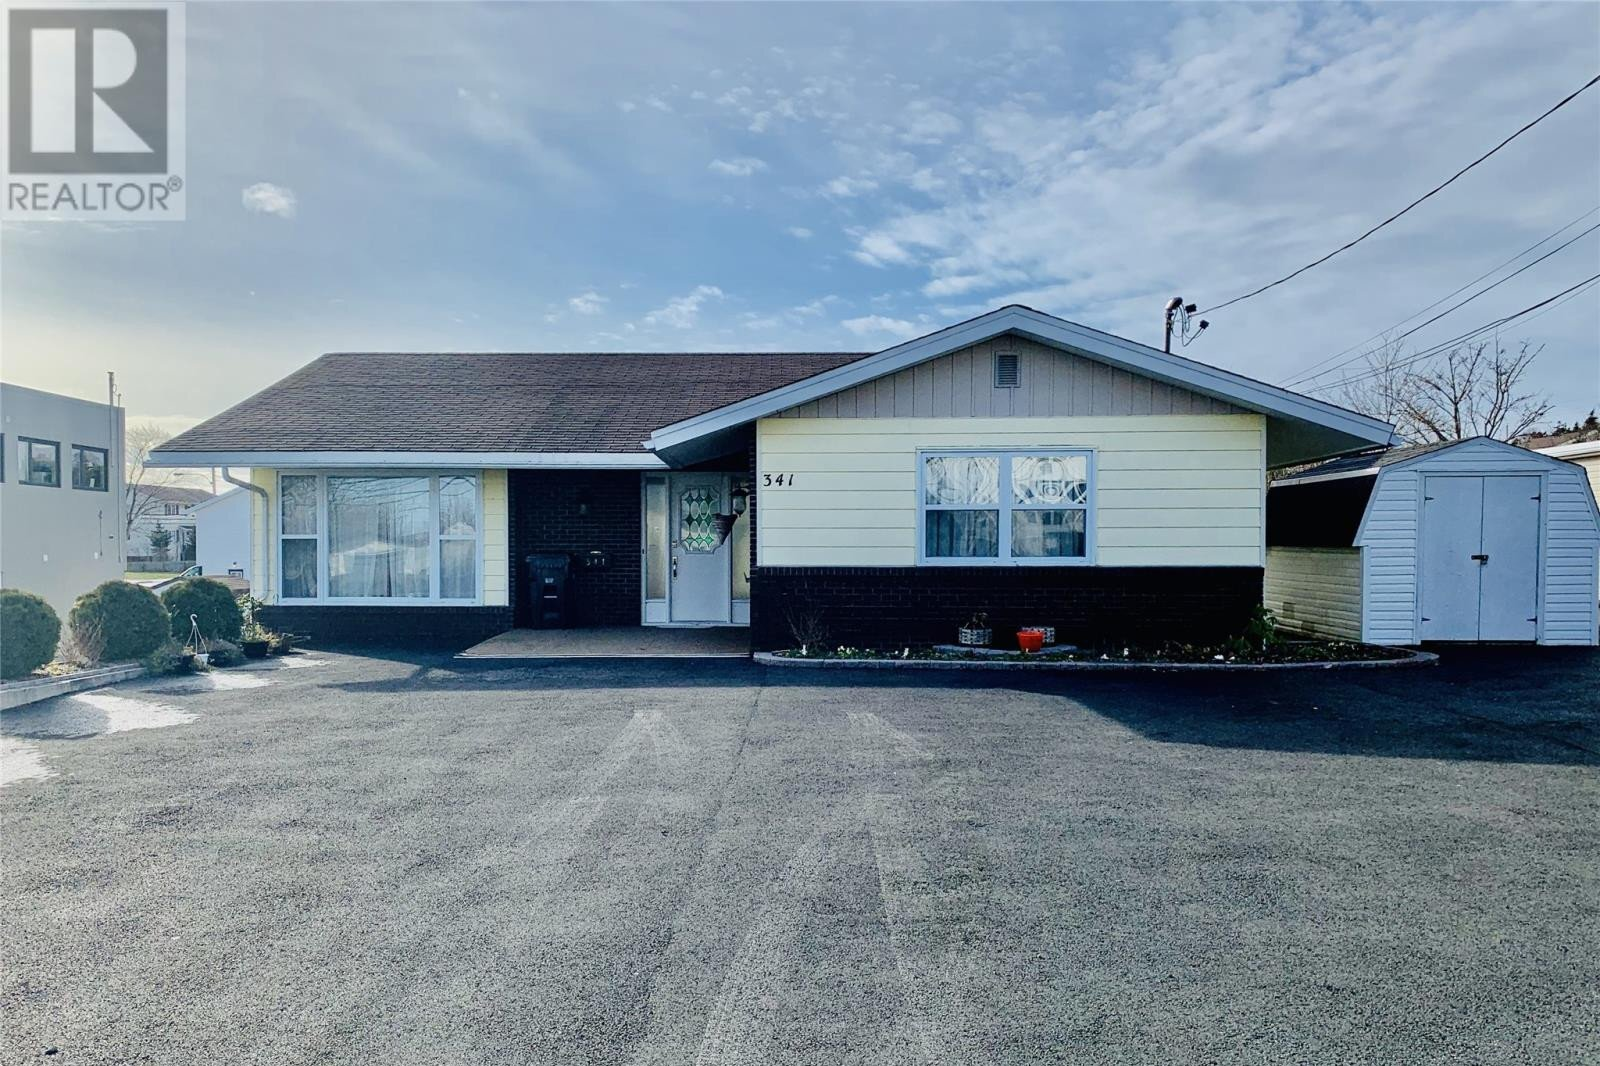 House for sale at 341 Portugal Cove Pl St. John's Newfoundland - MLS: 1223796